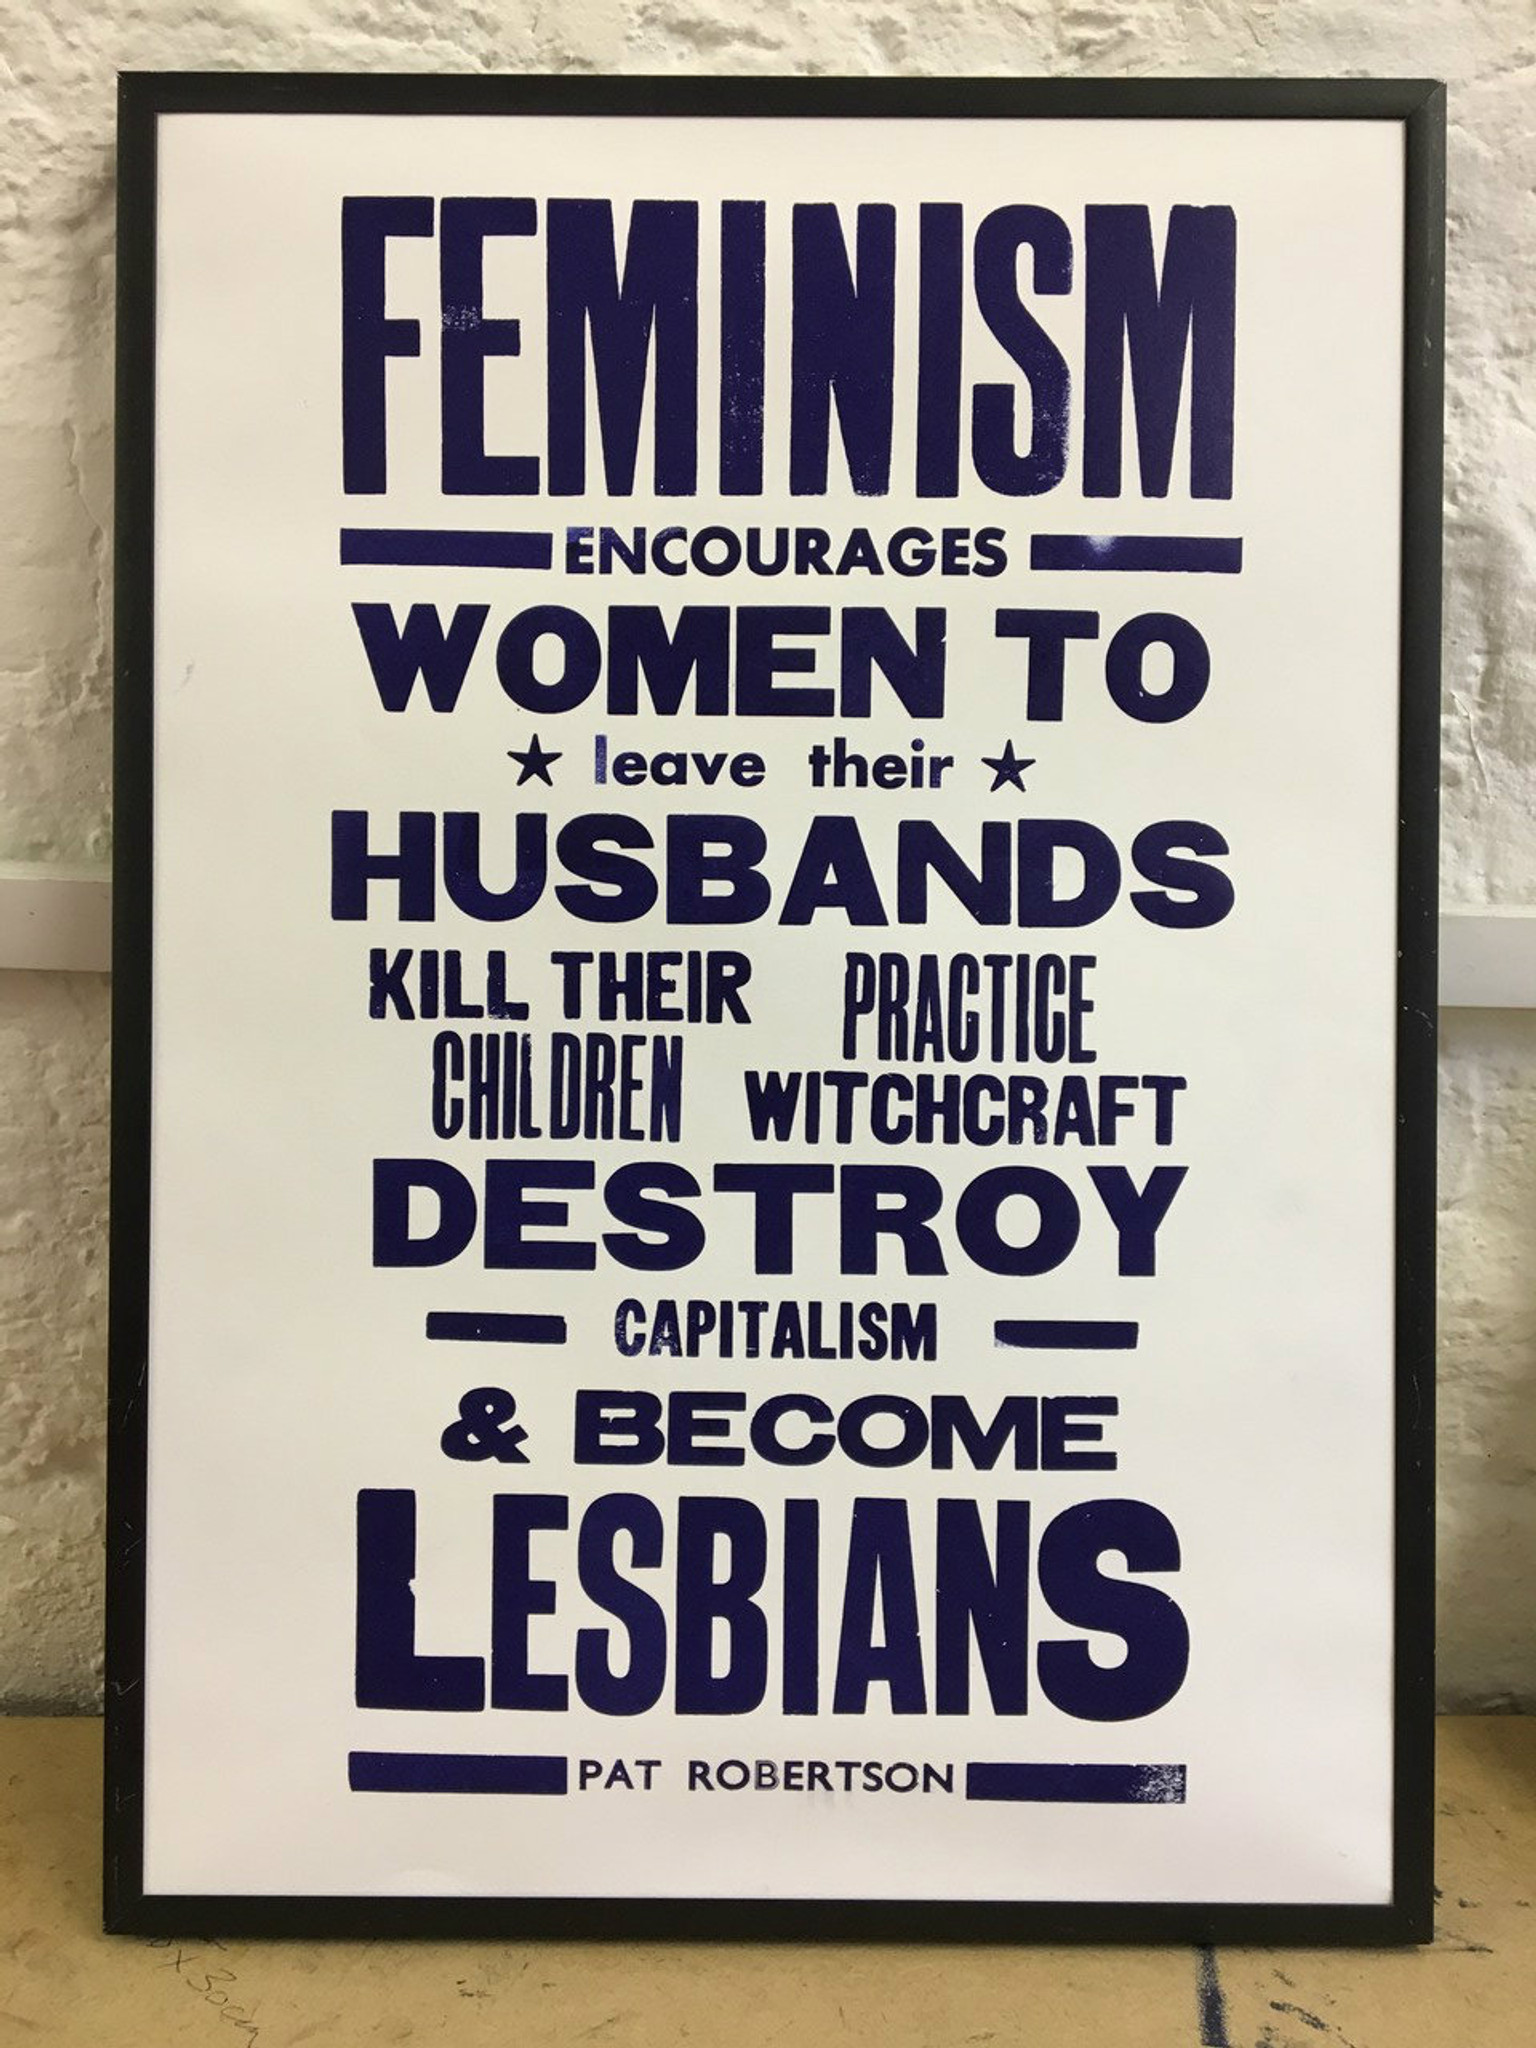 Feminism - Limited Edition Print